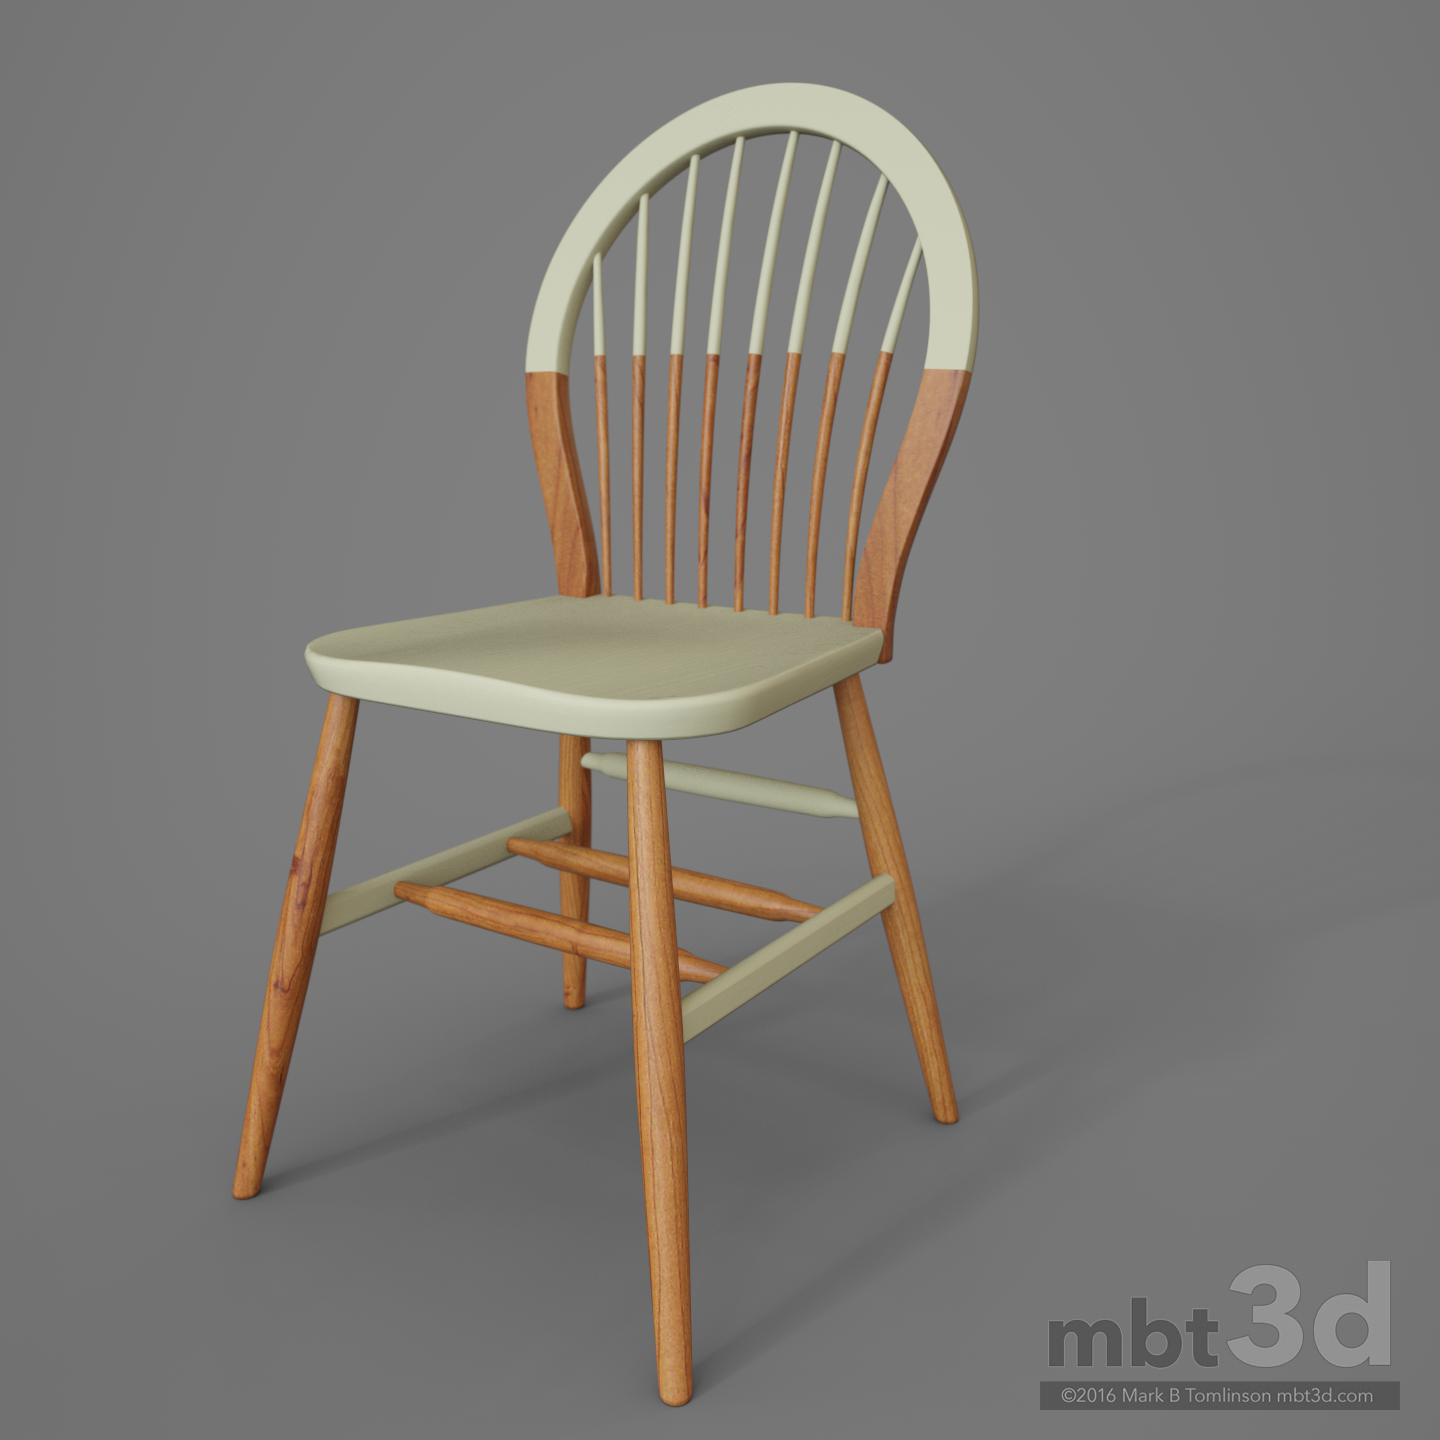 Mark b tomlinson round chair 0001 layer comp 2